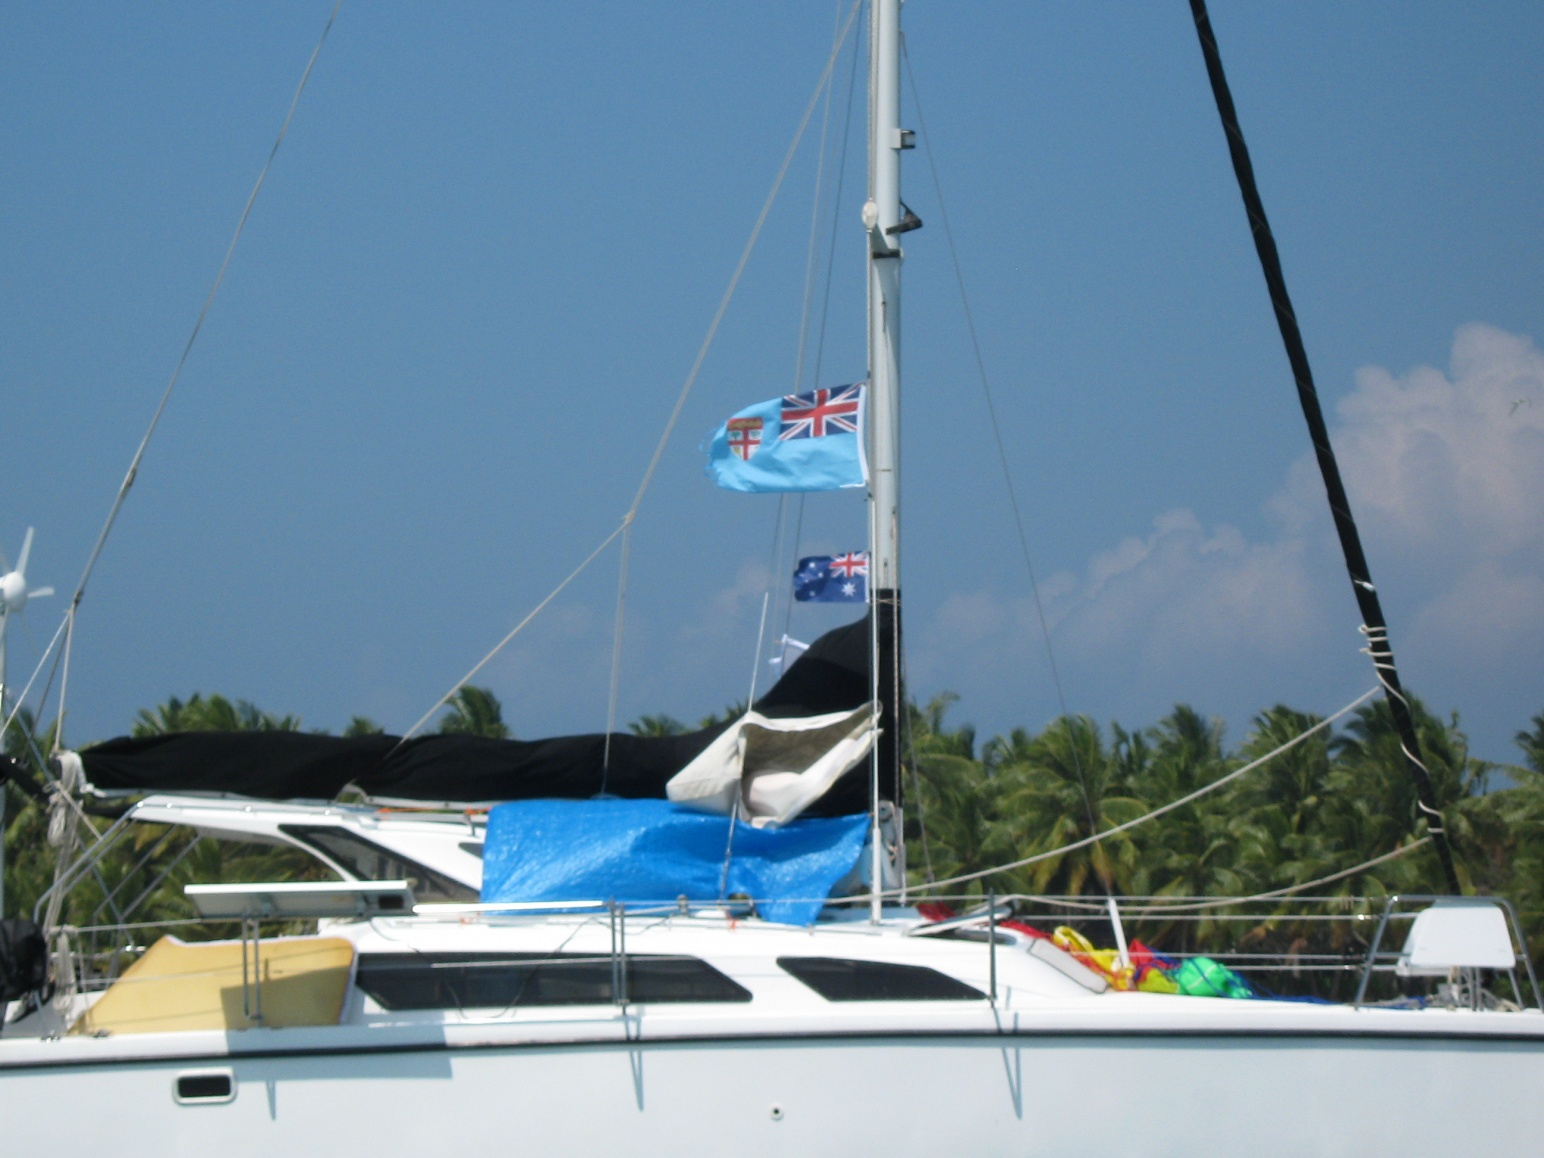 Click image for larger version  Name:Heathers piccys Fiji Sailchute Boat Us 250.jpg Views:124 Size:402.4 KB ID:44144